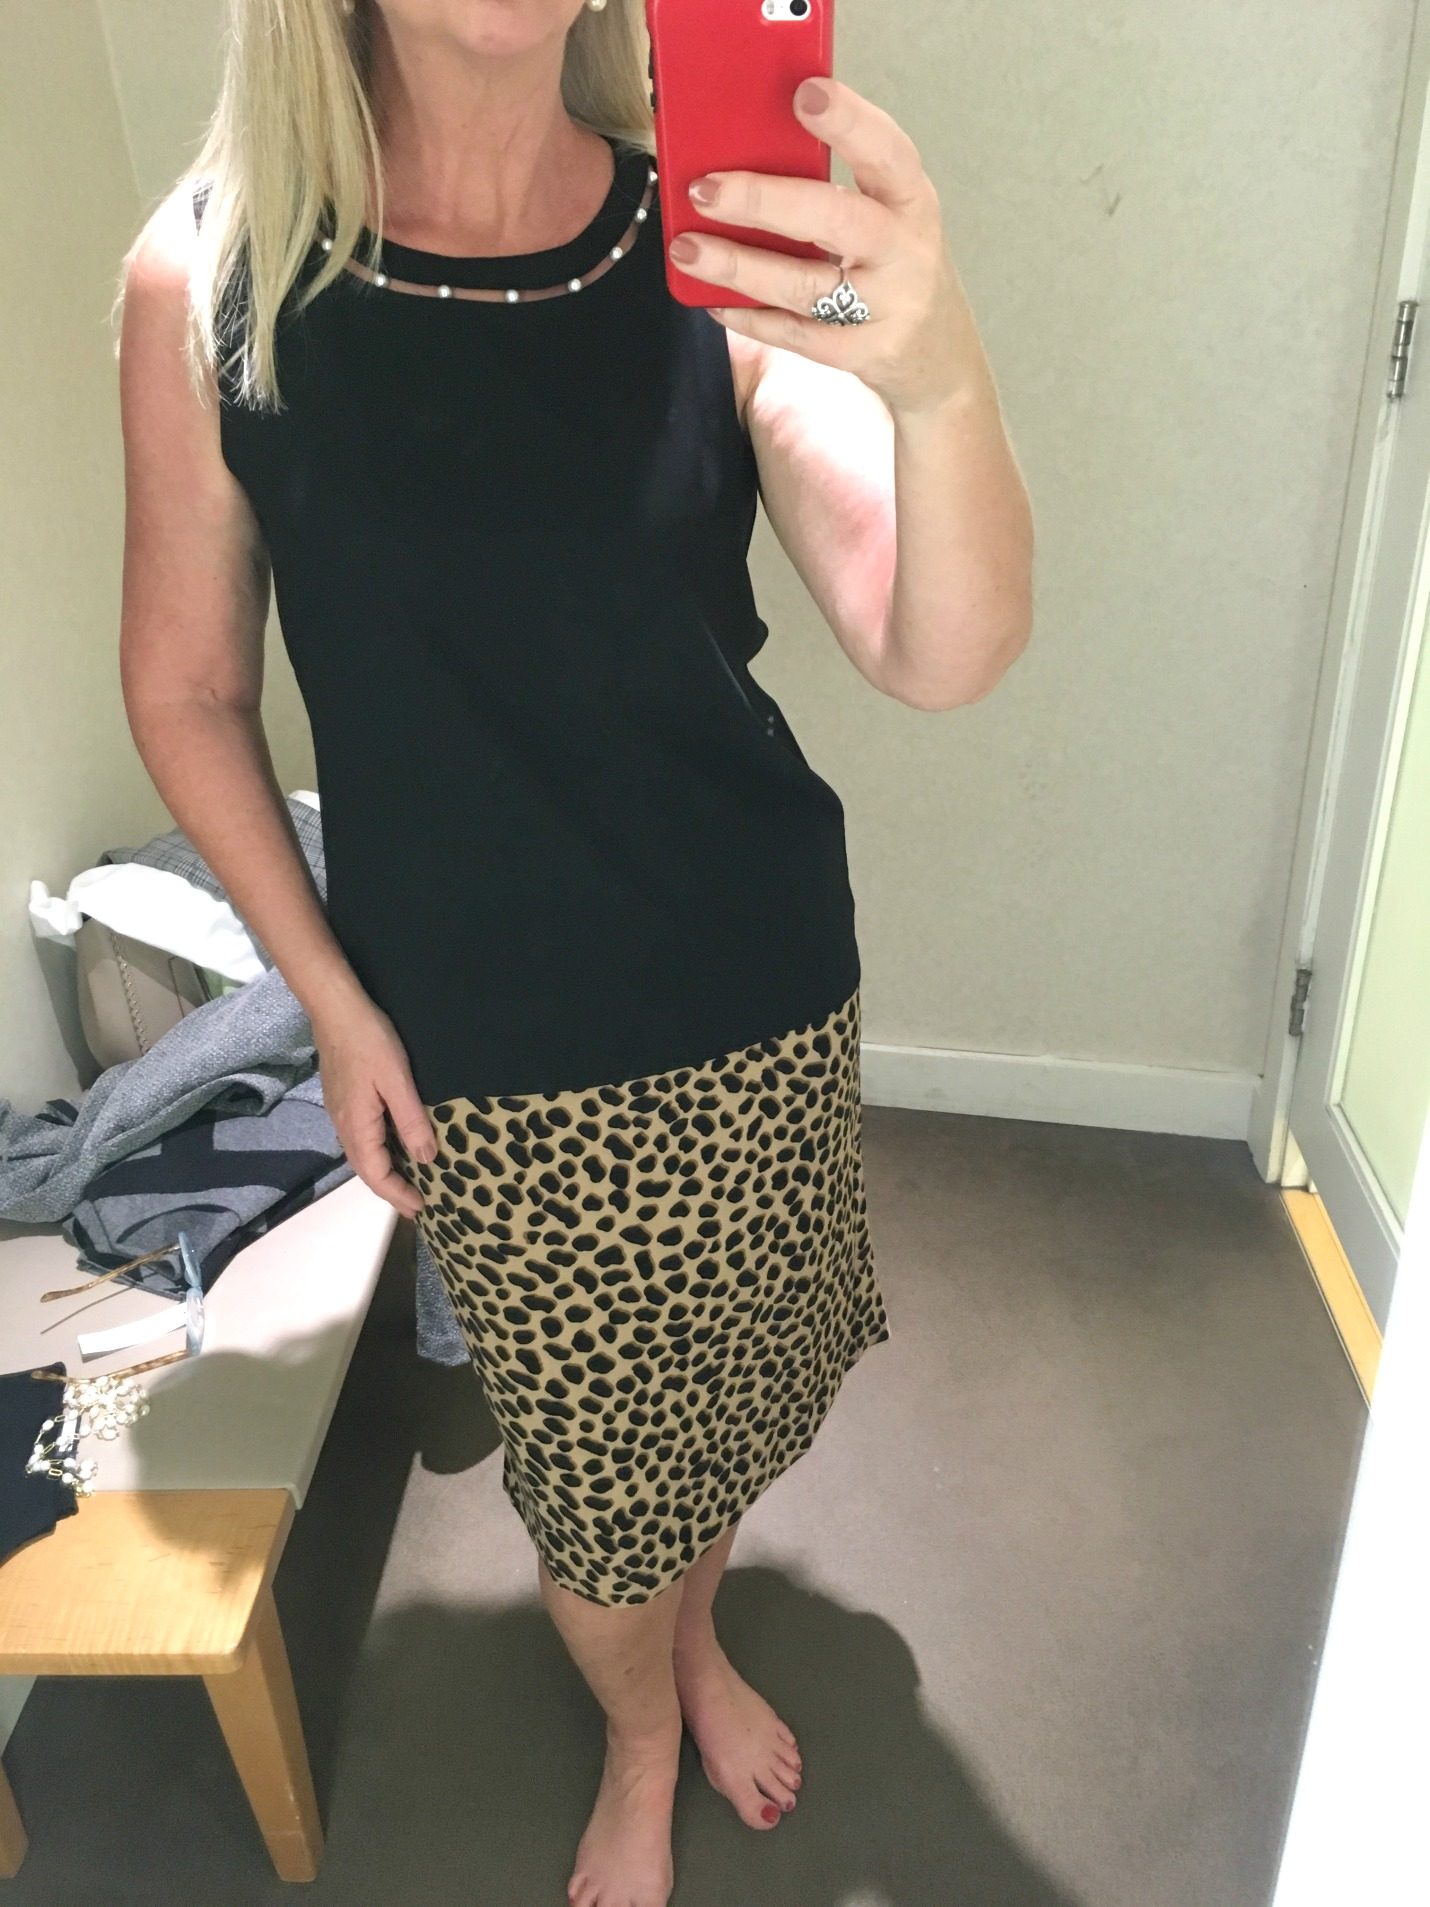 Ann Taylor Fall Career Clothing Try-On Session